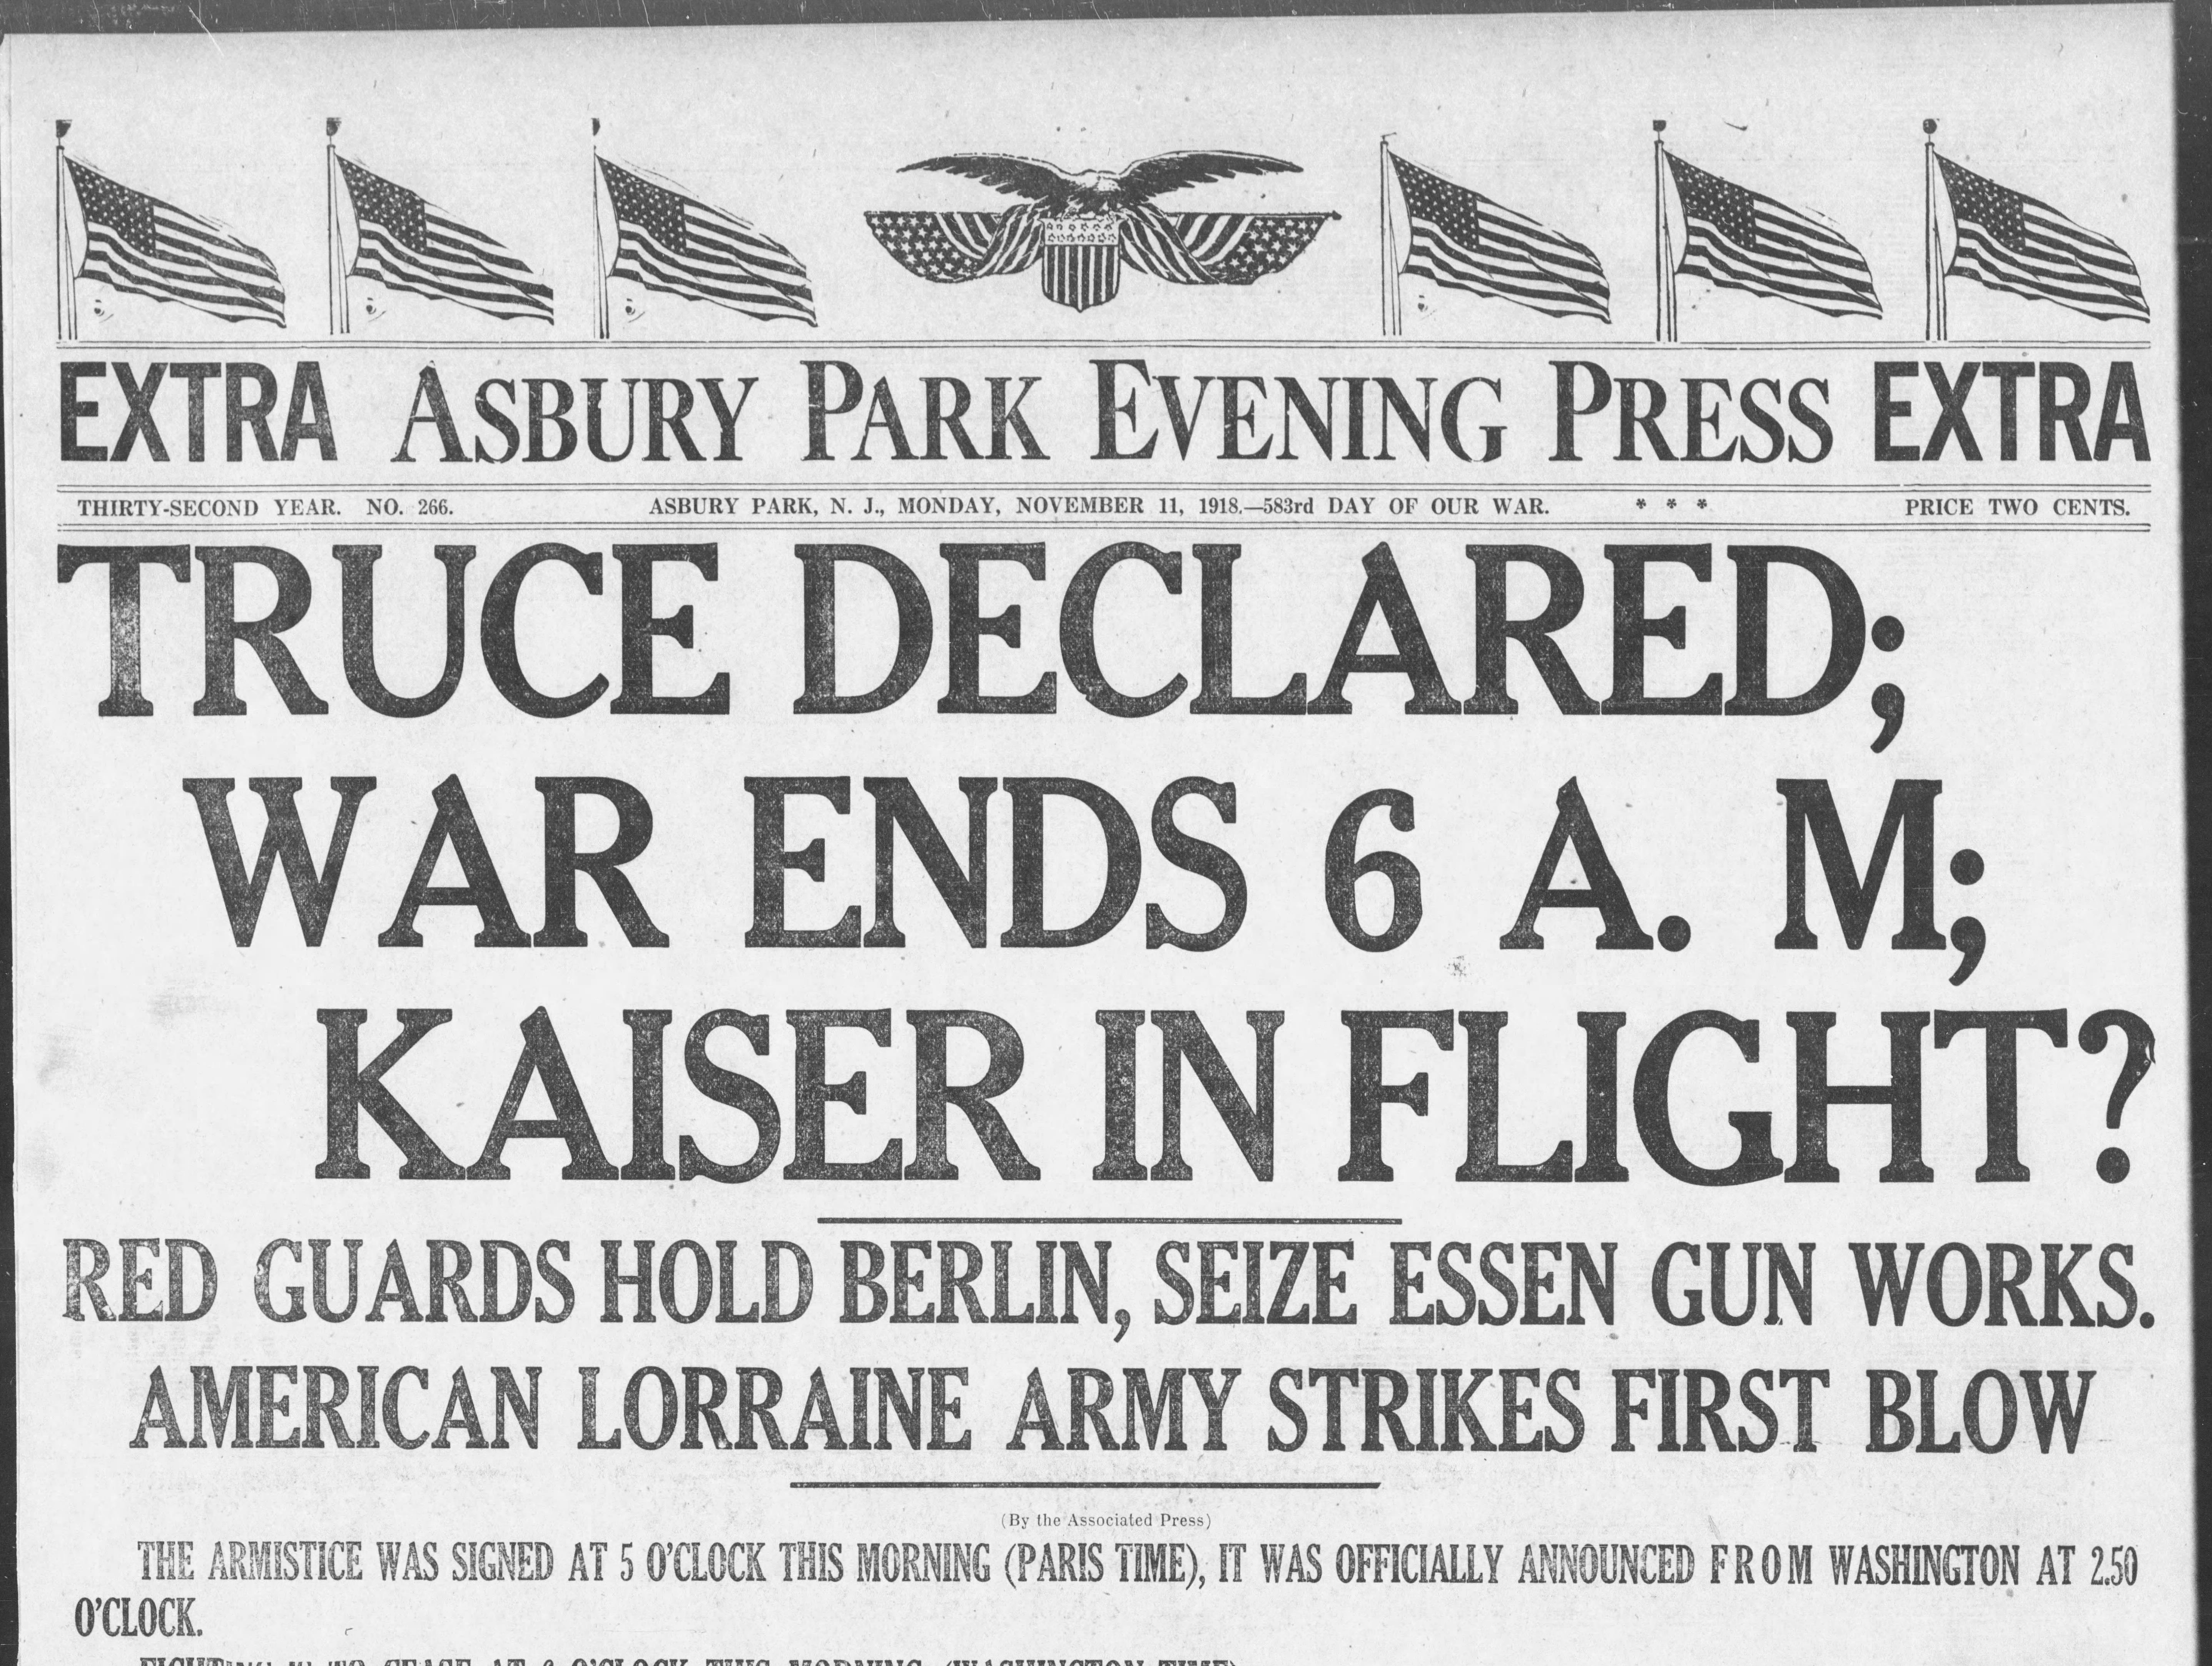 World War I comes to an end with the armistice on Monday, Nov. 11, 1918.